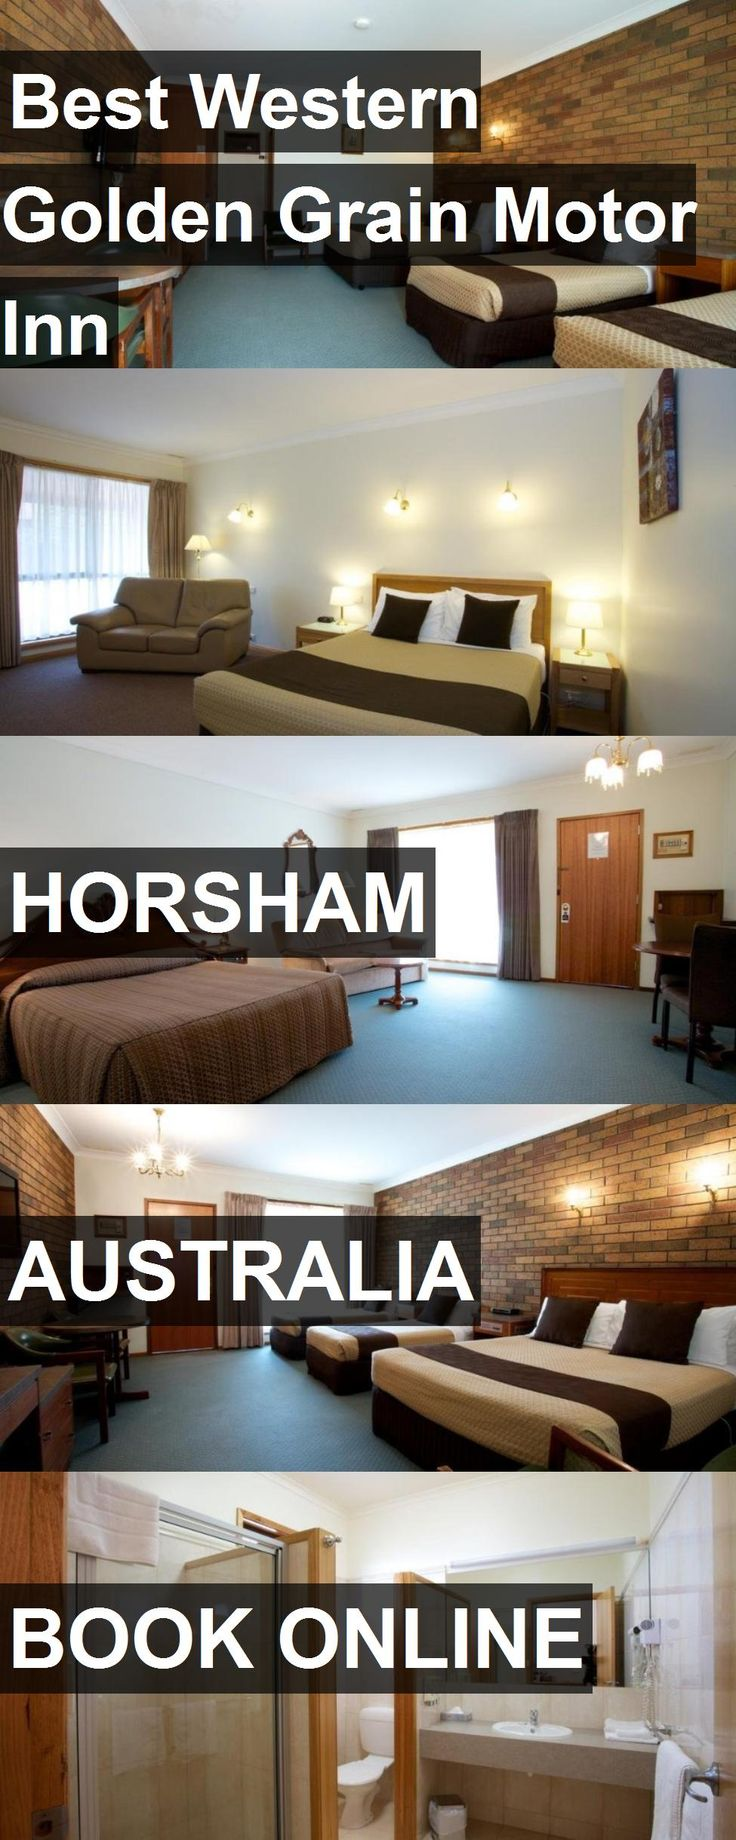 Hotel Best Western Golden Grain Motor Inn in Horsham, Australia. For more information, photos, reviews and best prices please follow the link. #Australia #Horsham #travel #vacation #hotel